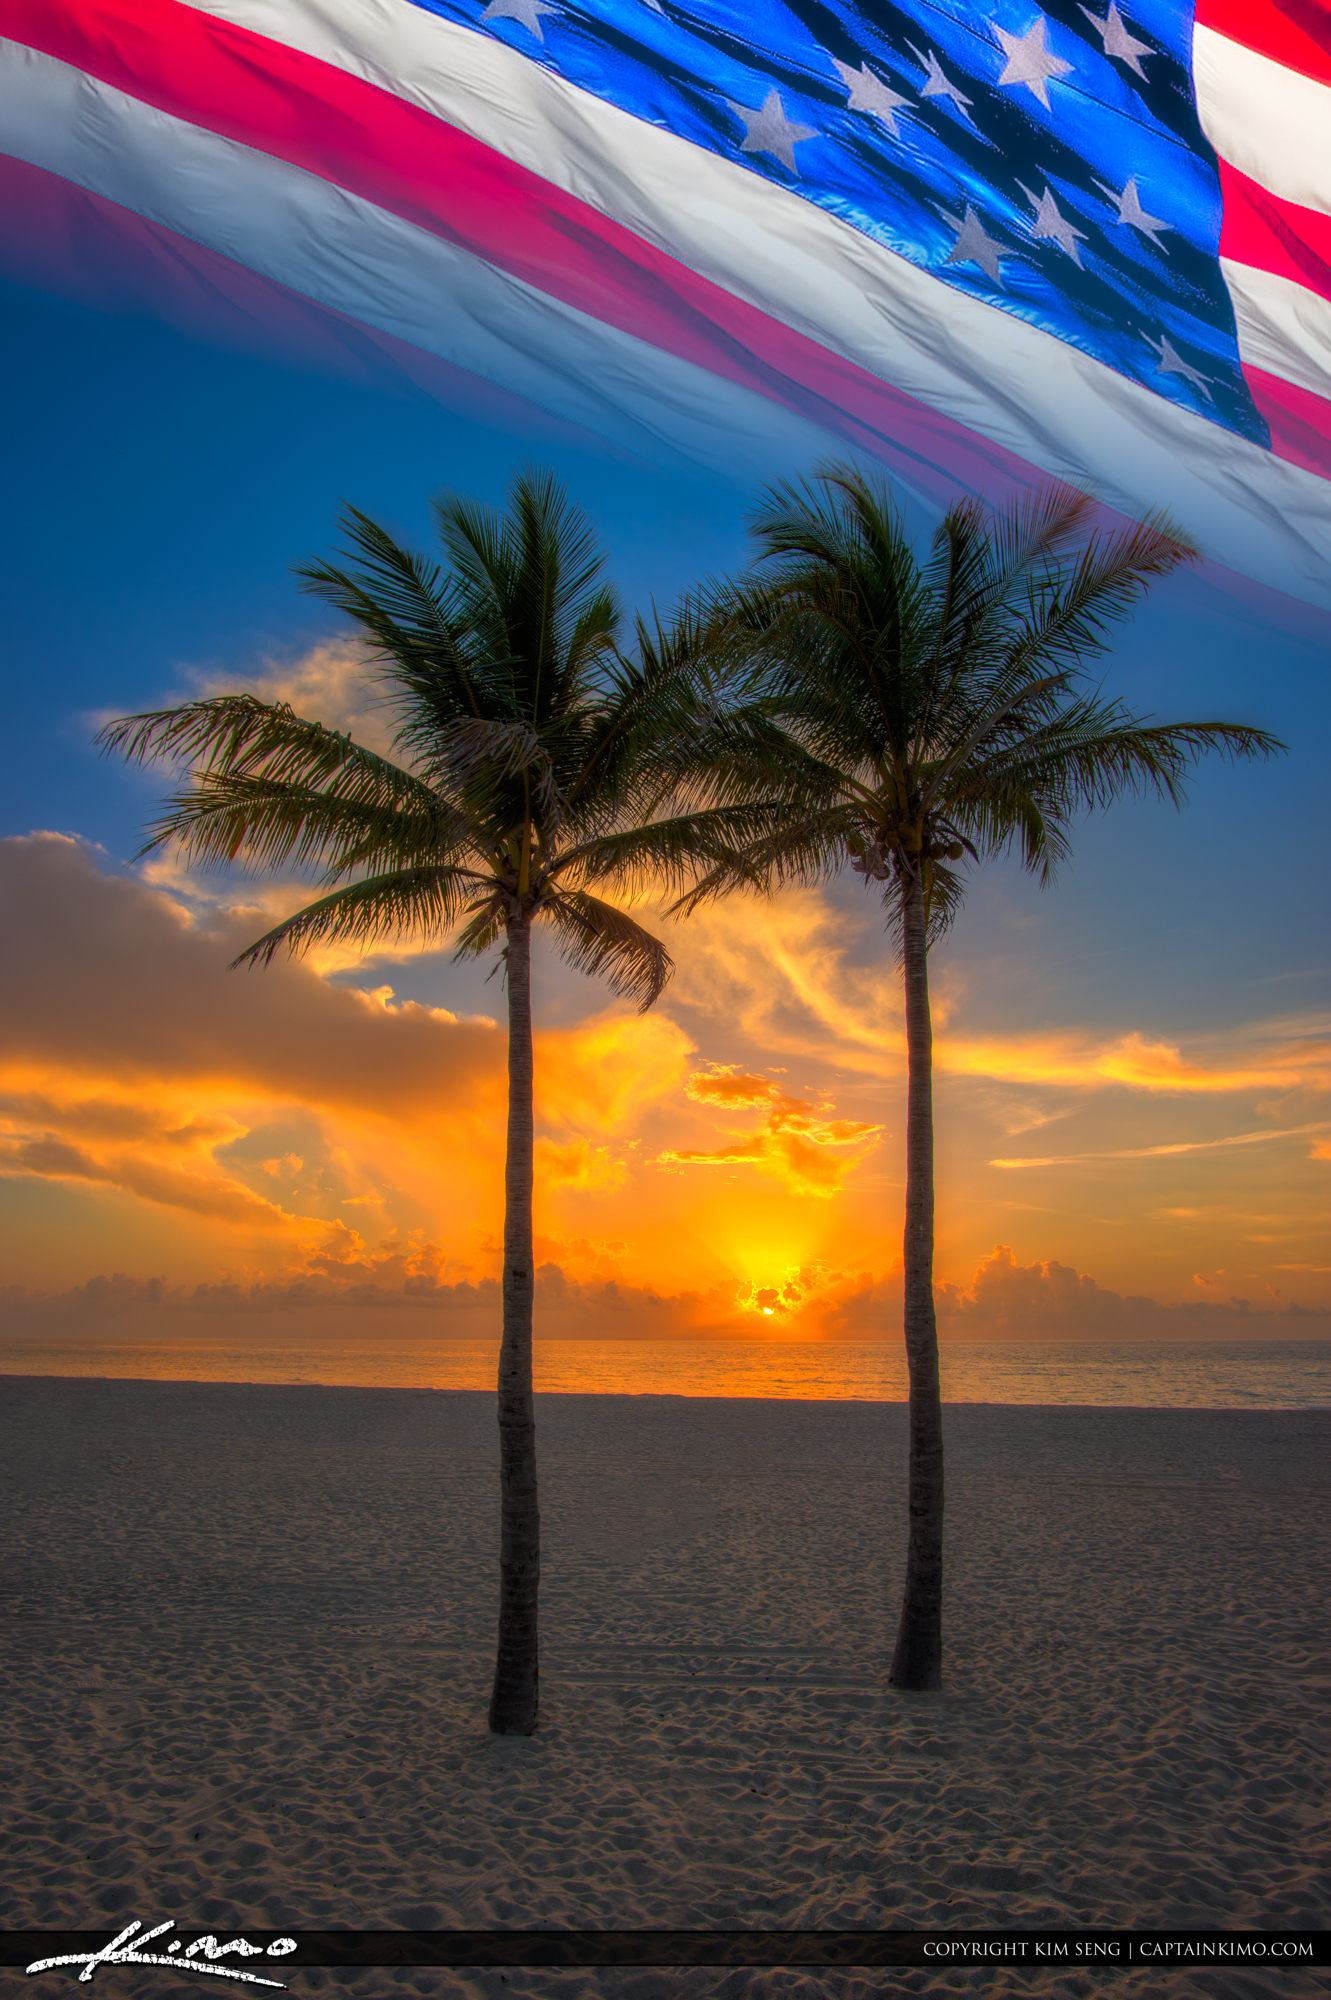 Fourth of July Sunrise Florida Beach and Flag